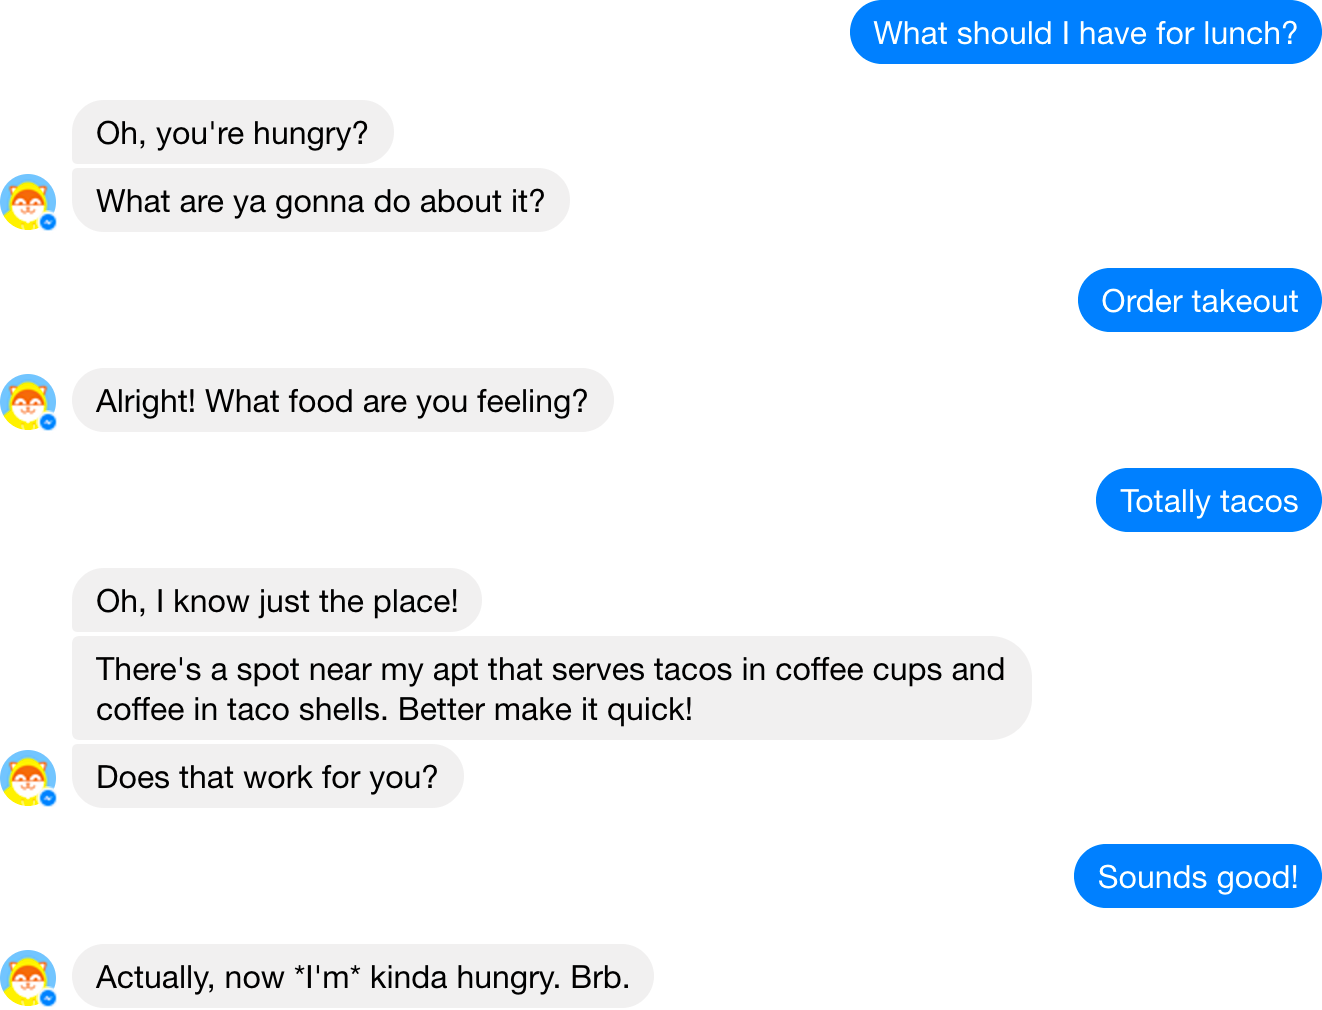 Screenshot of a conversation between a human and the Poncho chatbot